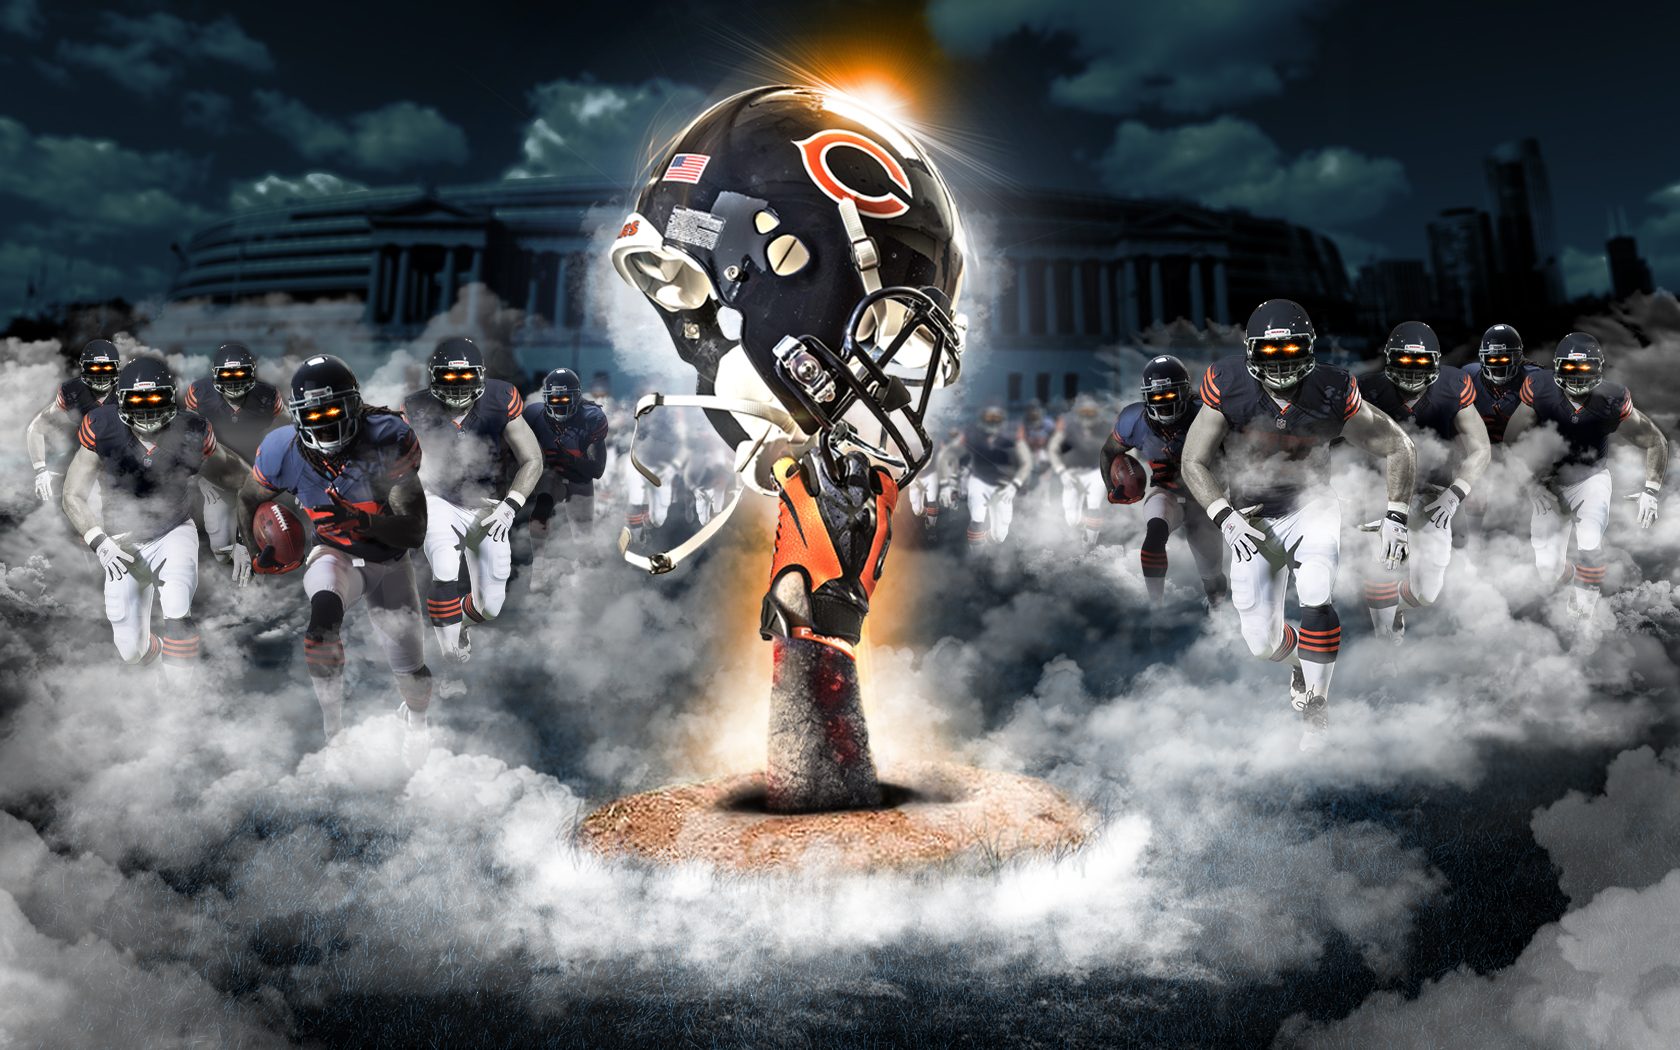 1680x1050 - Chicago Bears Wallpapers 25